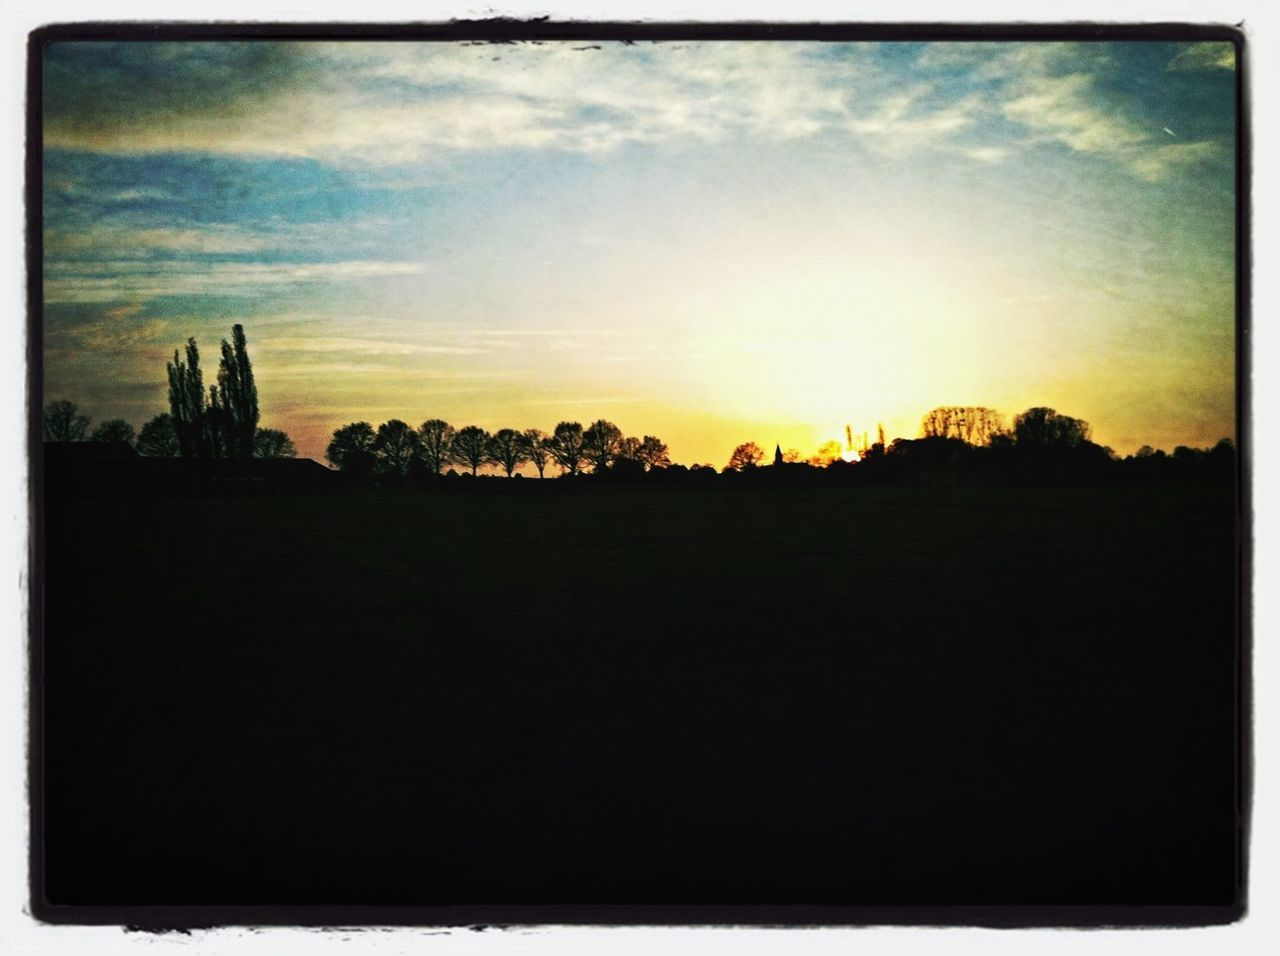 landscape, silhouette, sky, sunset, nature, tree, field, tranquility, beauty in nature, no people, outdoors